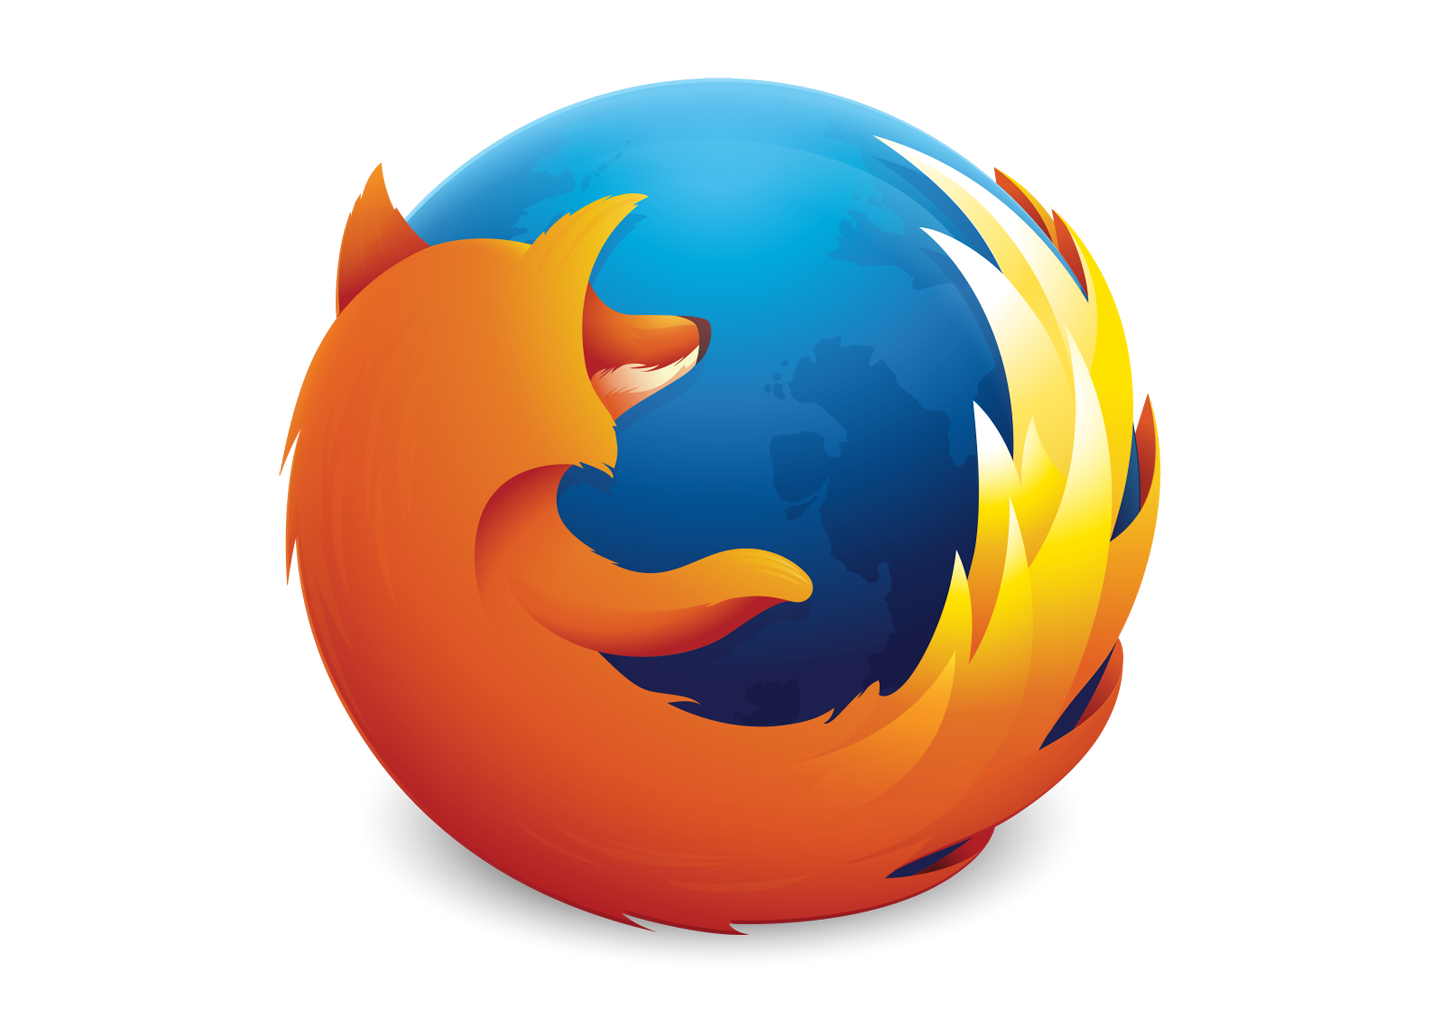 firefox-mac-icon-100051847-orig.png